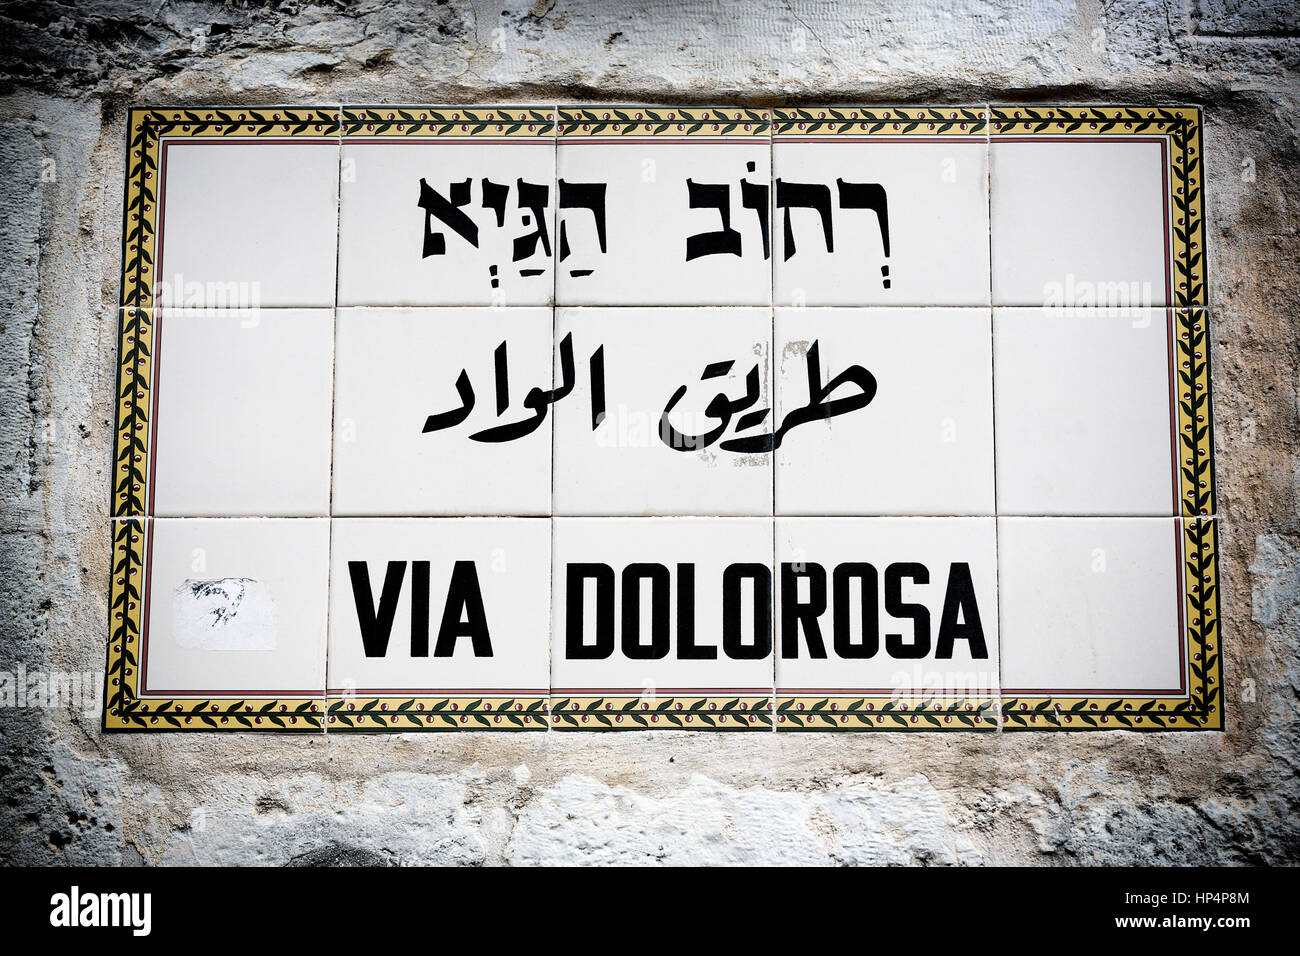 close up of via dolorosa street name mounted on wall, old city, jerusalem, israel - Stock Image